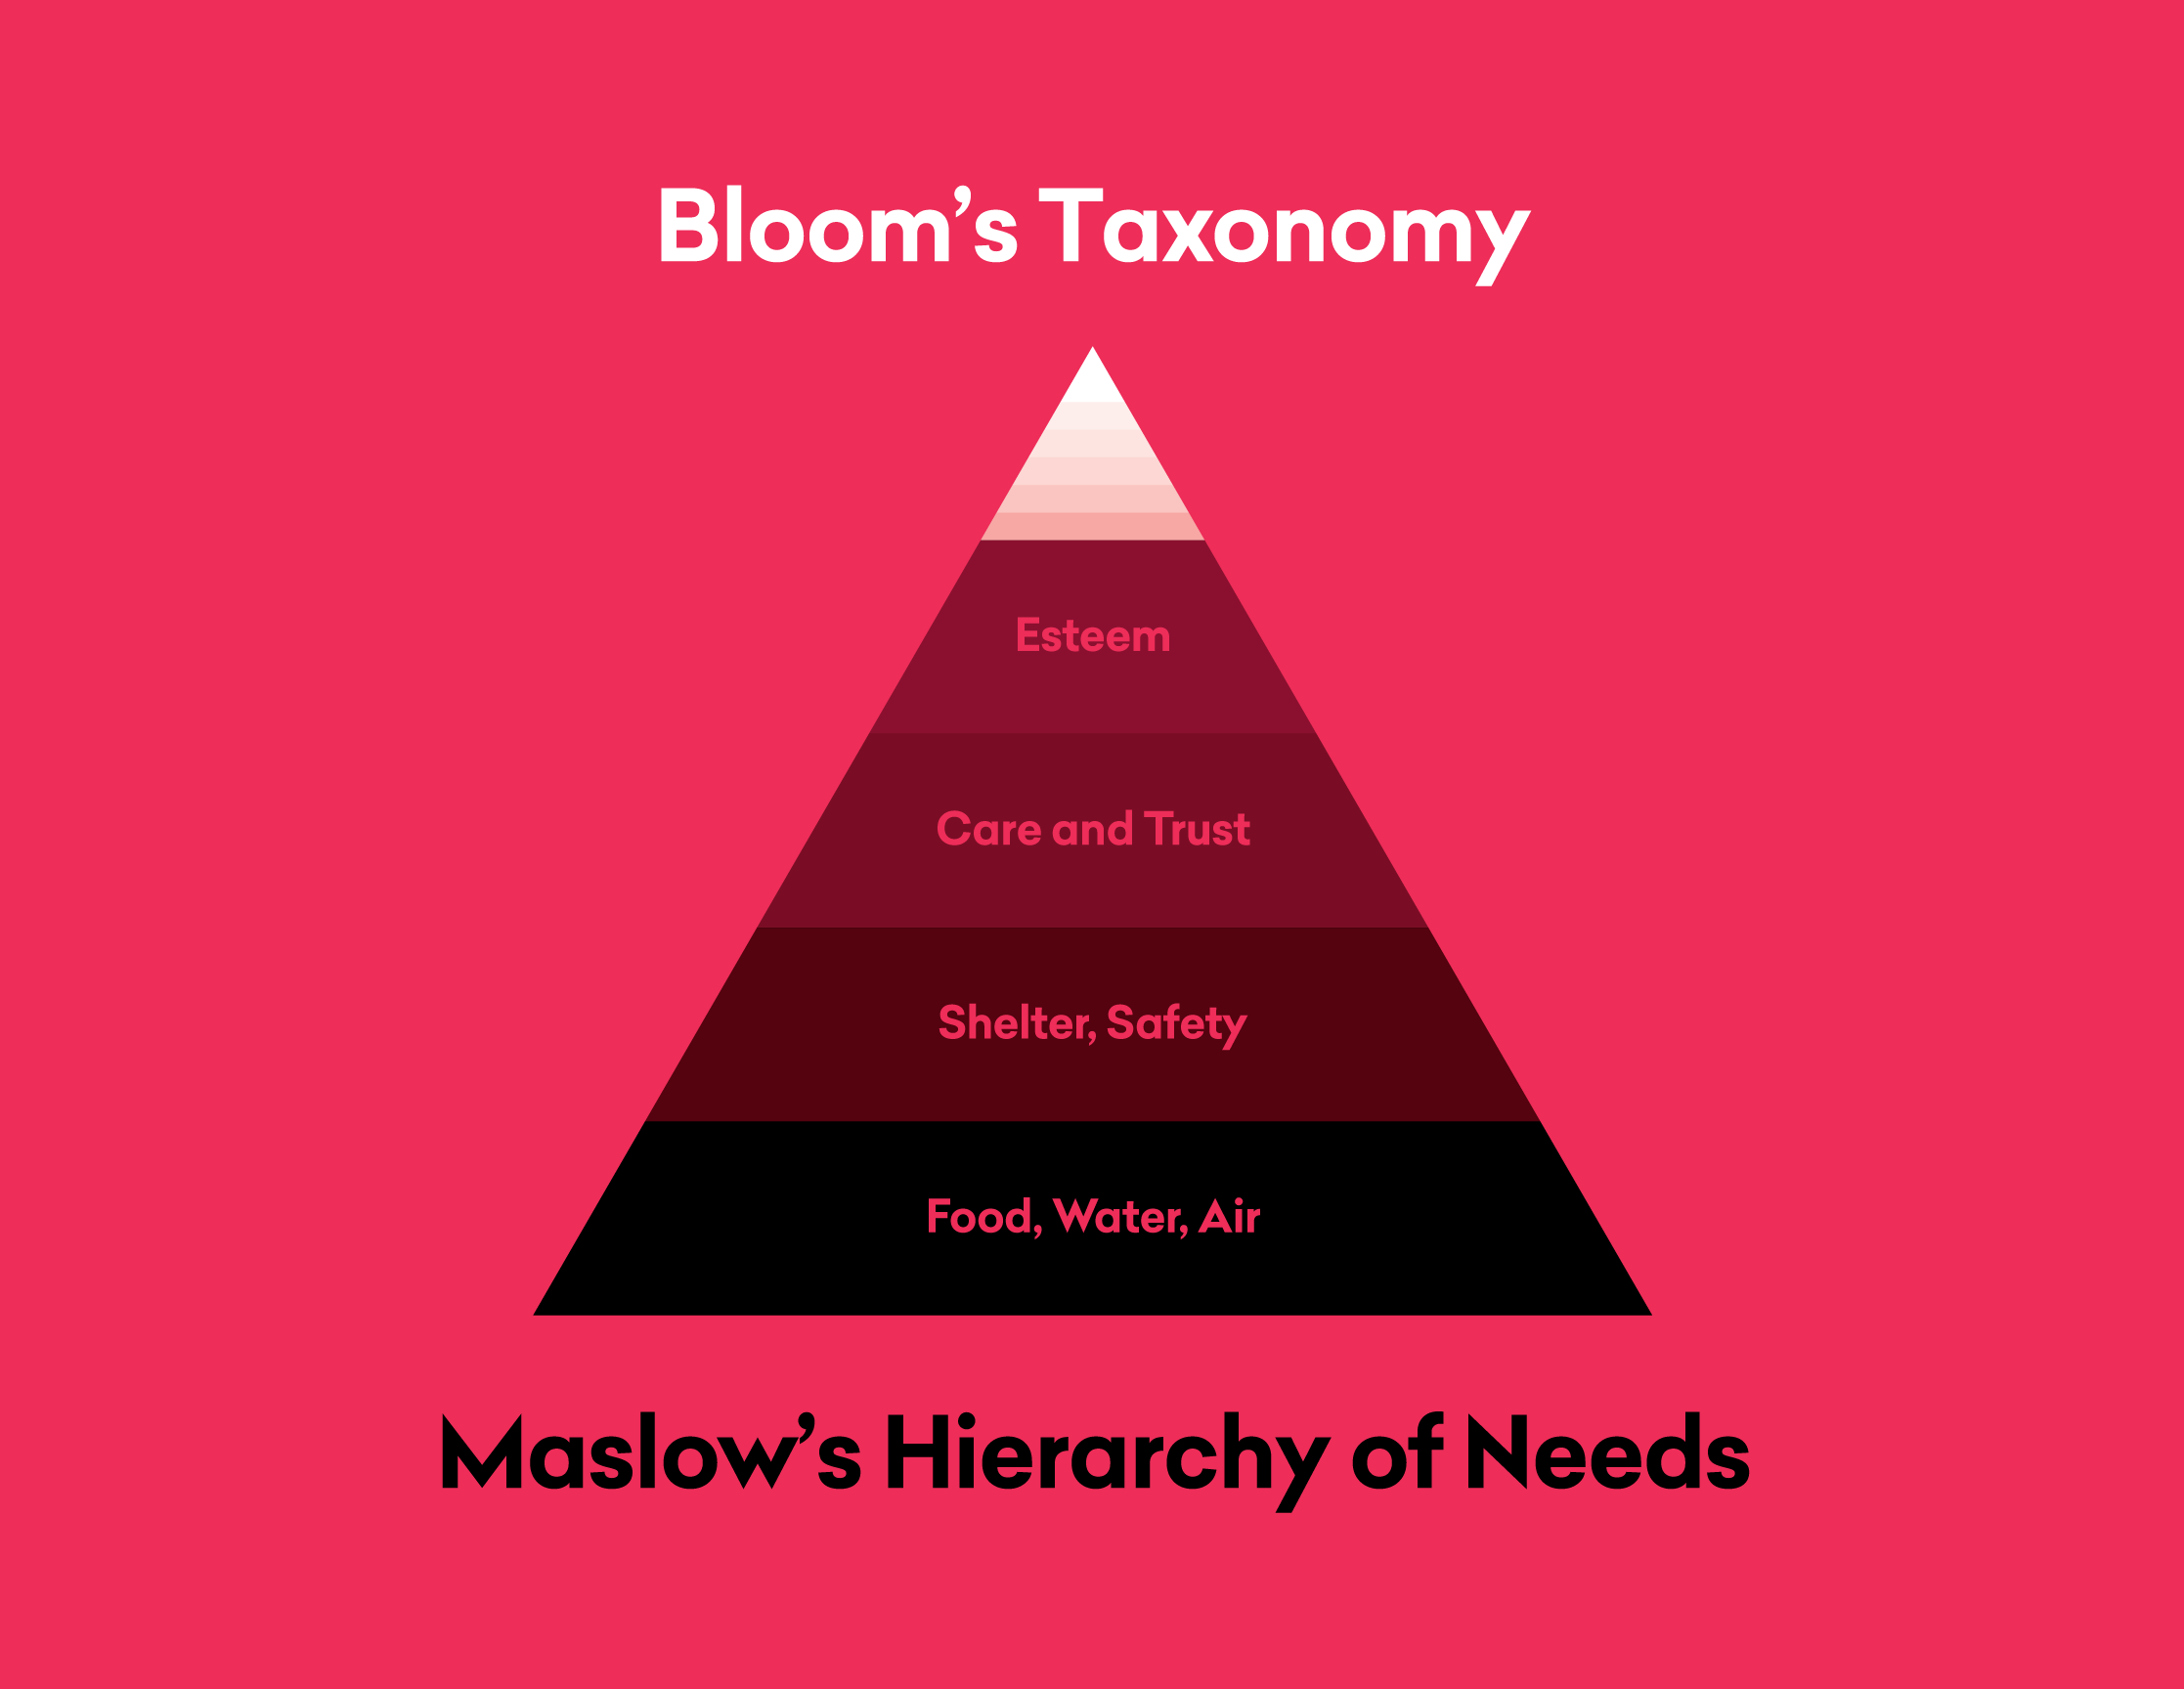 Bloom's Taxonomy and Maslow's Hierarchy of Needs